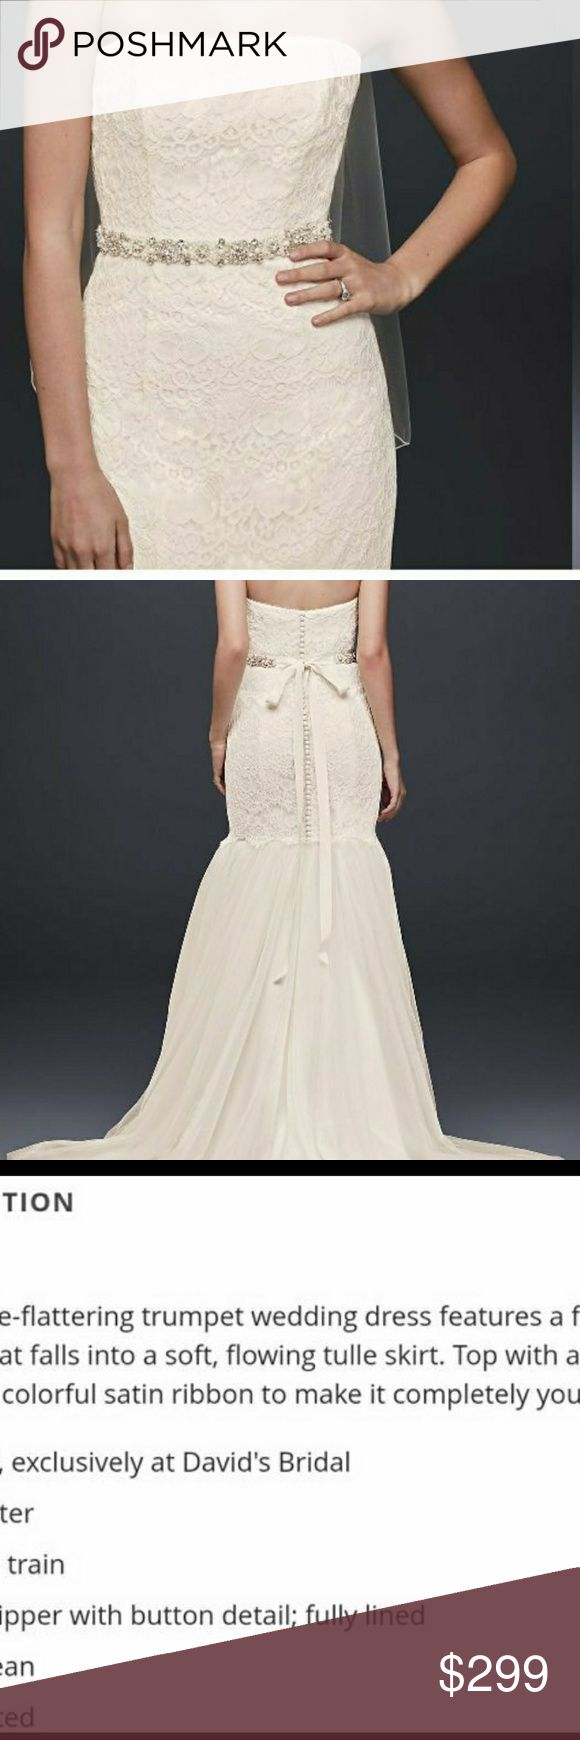 Figure Flattering Wedding Dress Davids Bridal figure-fattering  trumpet wedding dress that features a fitted lace bodice that falls into a soft, flowing tulle skirt. Make this your own by adding a sparking crystal or color satin ribbon. Will include ivory crystal belt and veil with reasonable or full price offer. David's Bridal Dresses Wedding